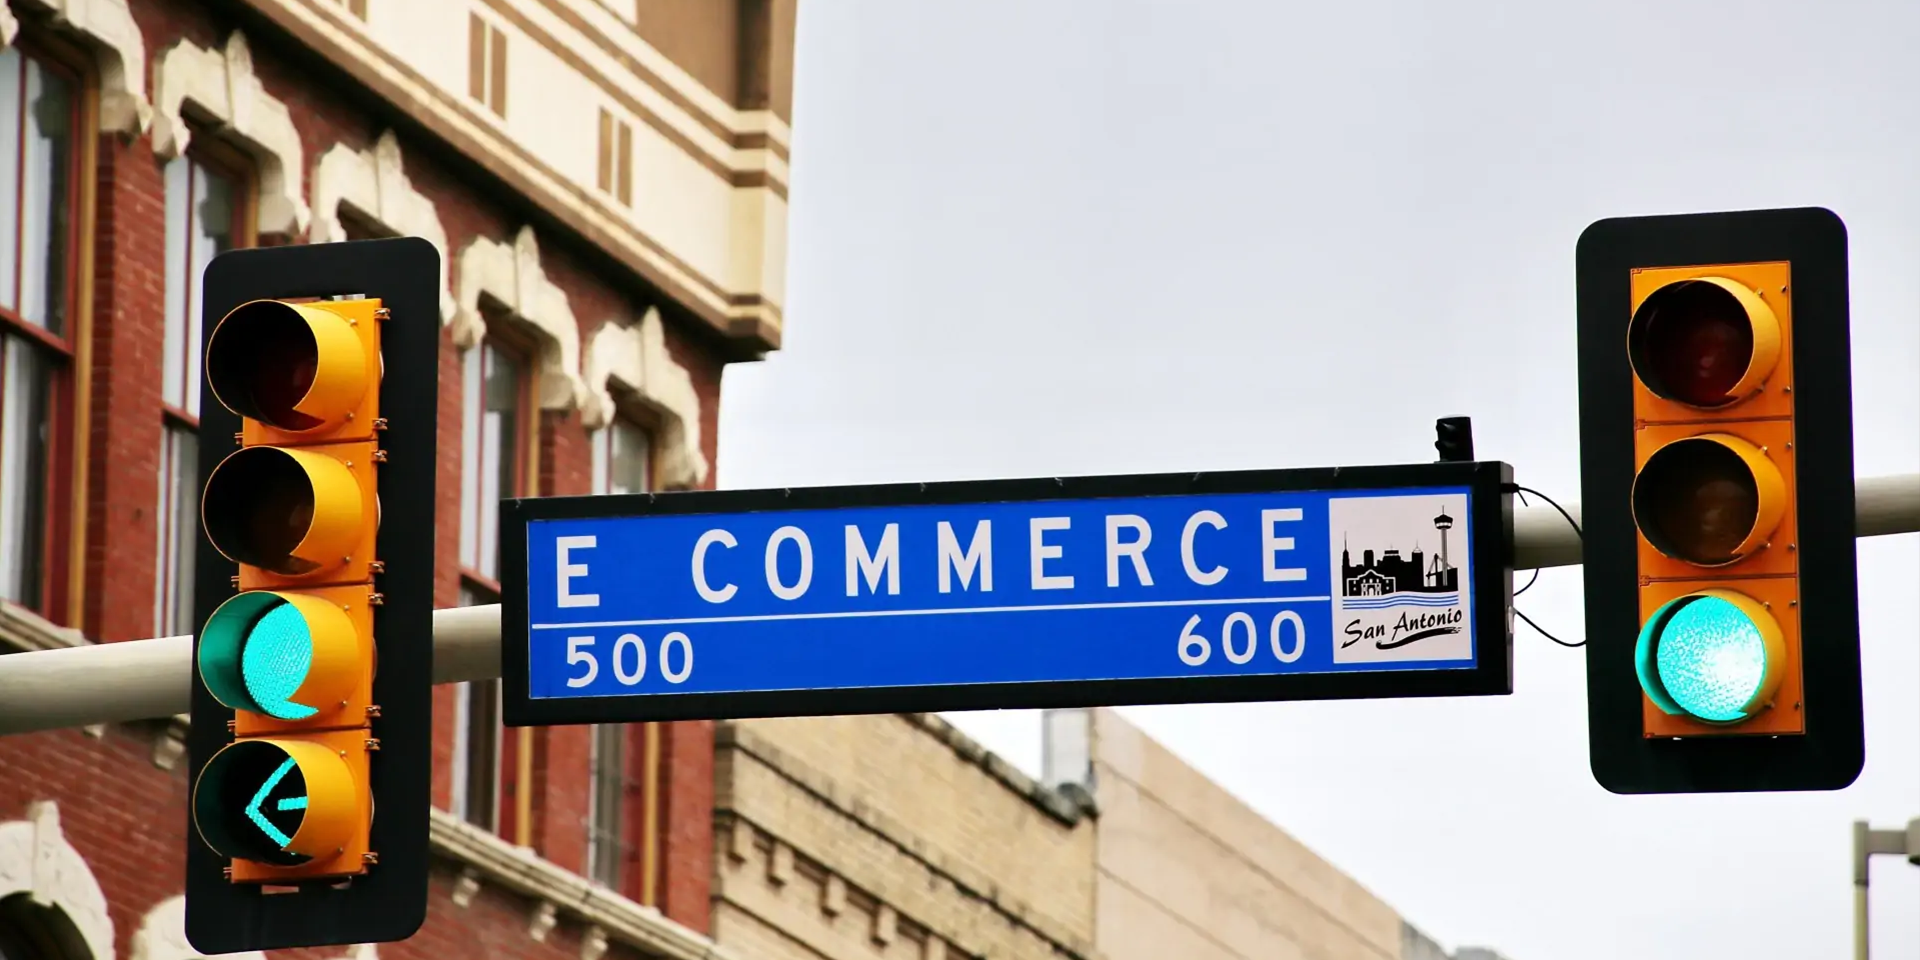 E-commerce VOL I; Are We Going Shopping?